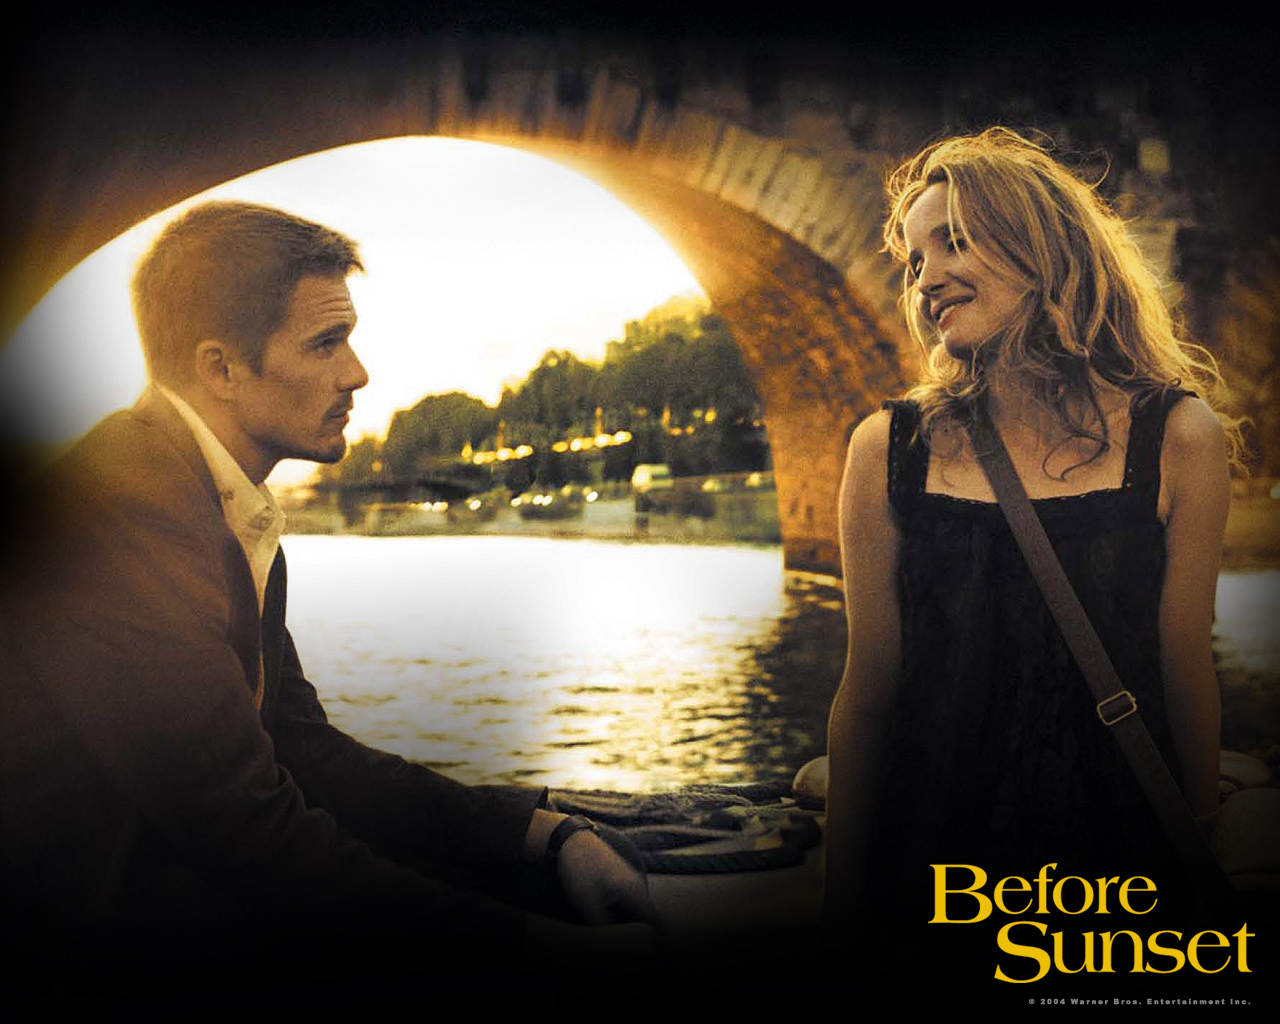 Before sunset 7